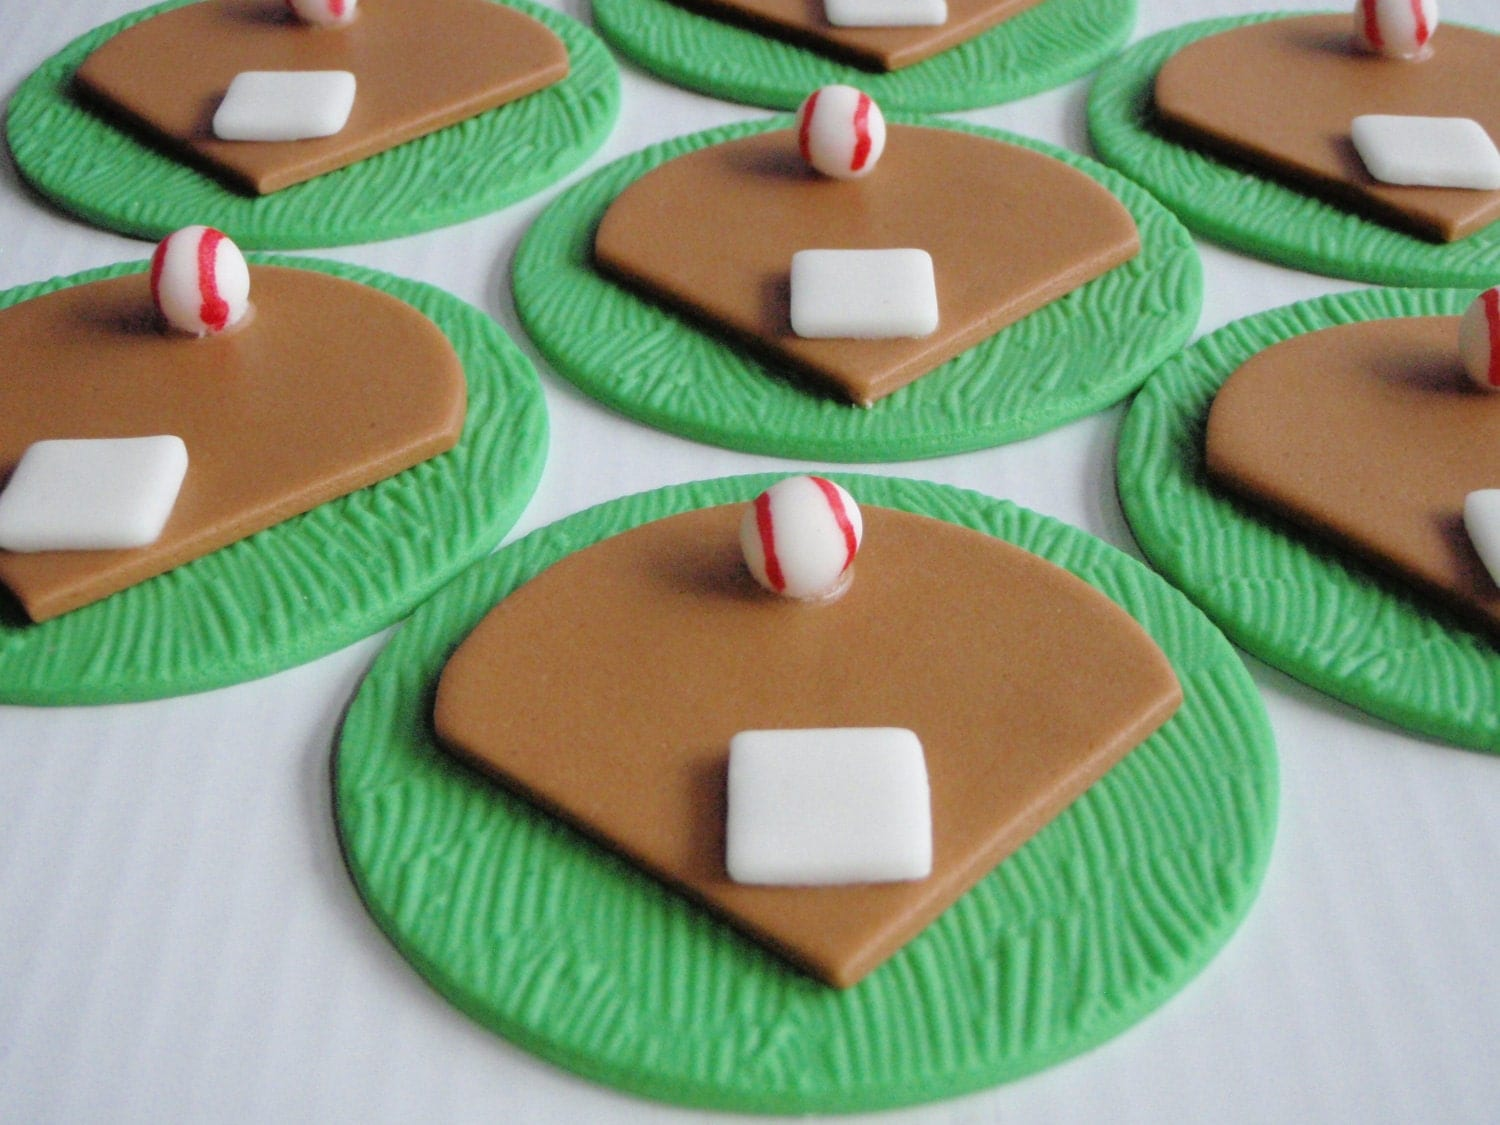 Edible Baseball Cake Decorations